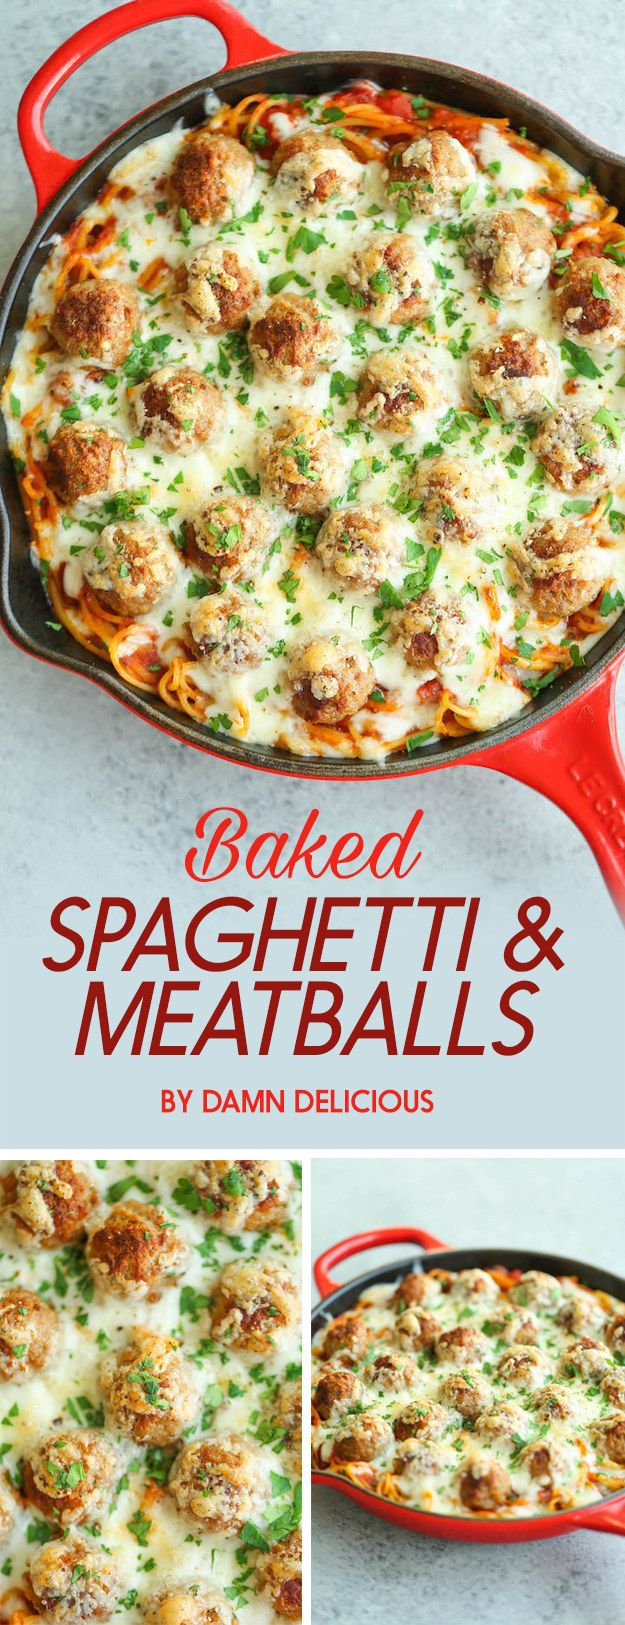 Baked Spaghetti and Meatballs | 7 Tasty Dinners To Eat This Week